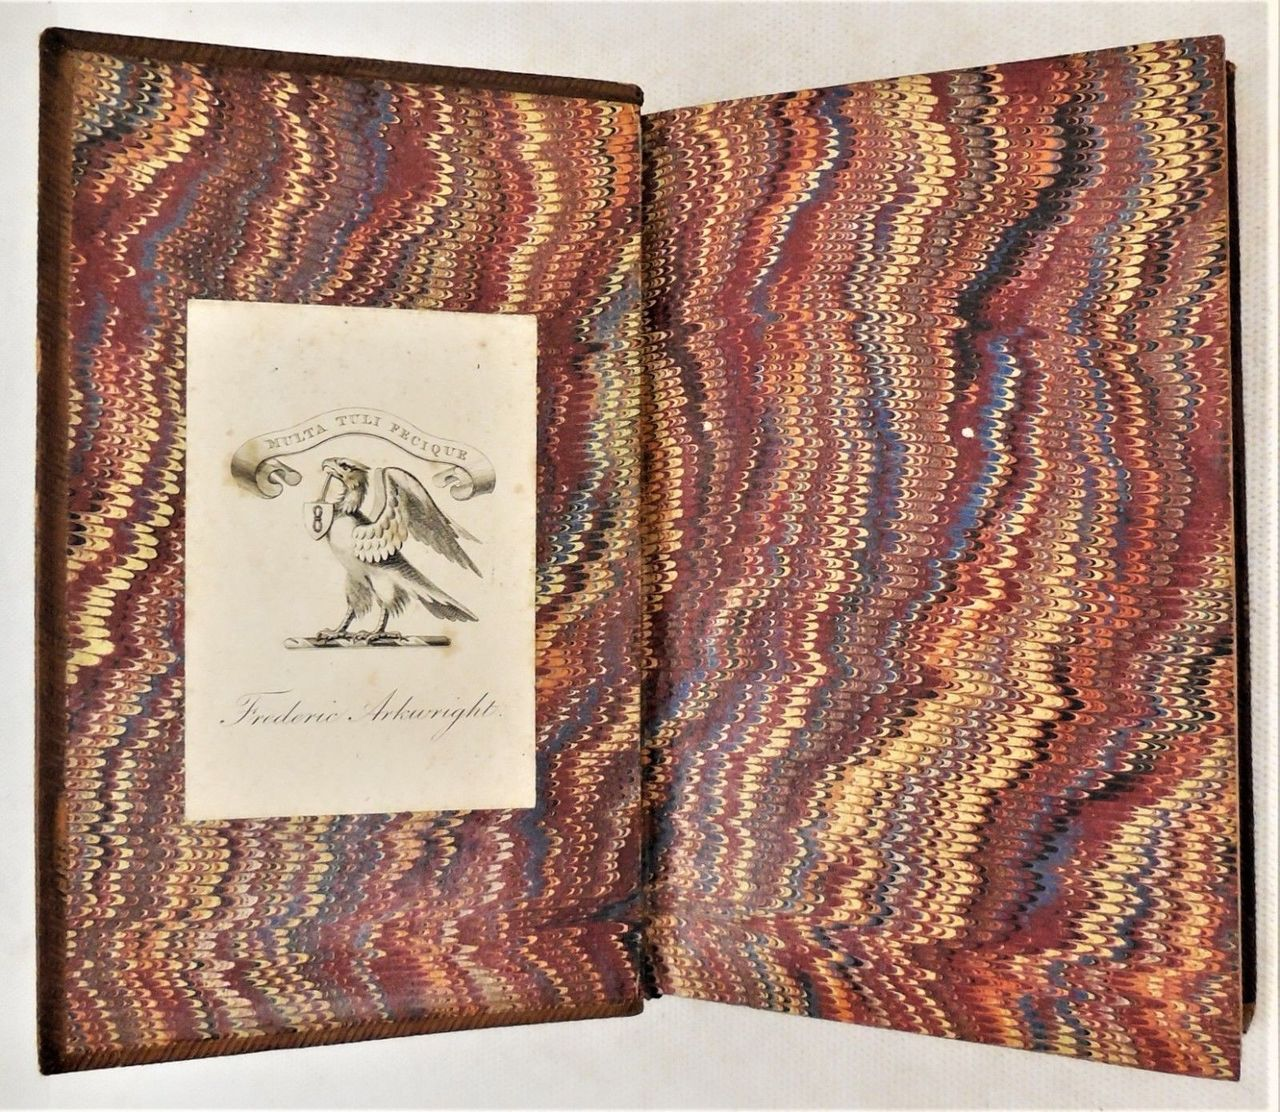 CAMILLA: A PICTURE OF YOUTH, by Frances Burney - 1796 [5 Vols, 1st Ed]